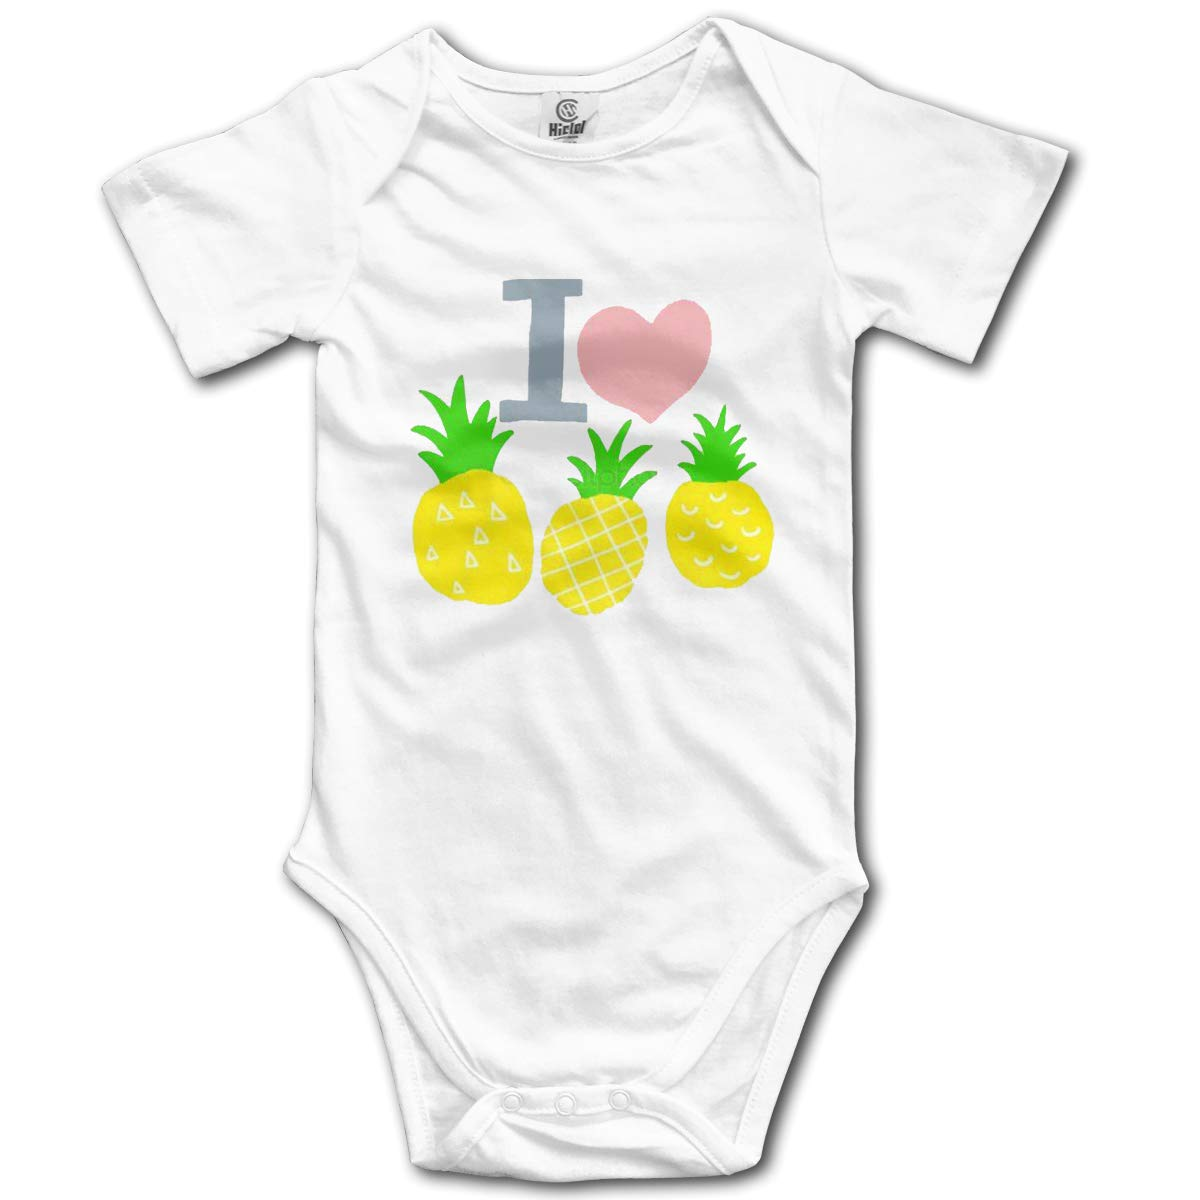 VANMASS Toddler I Love Pineapple Short Sleeve Bodysuit Clothes Baby Rompers